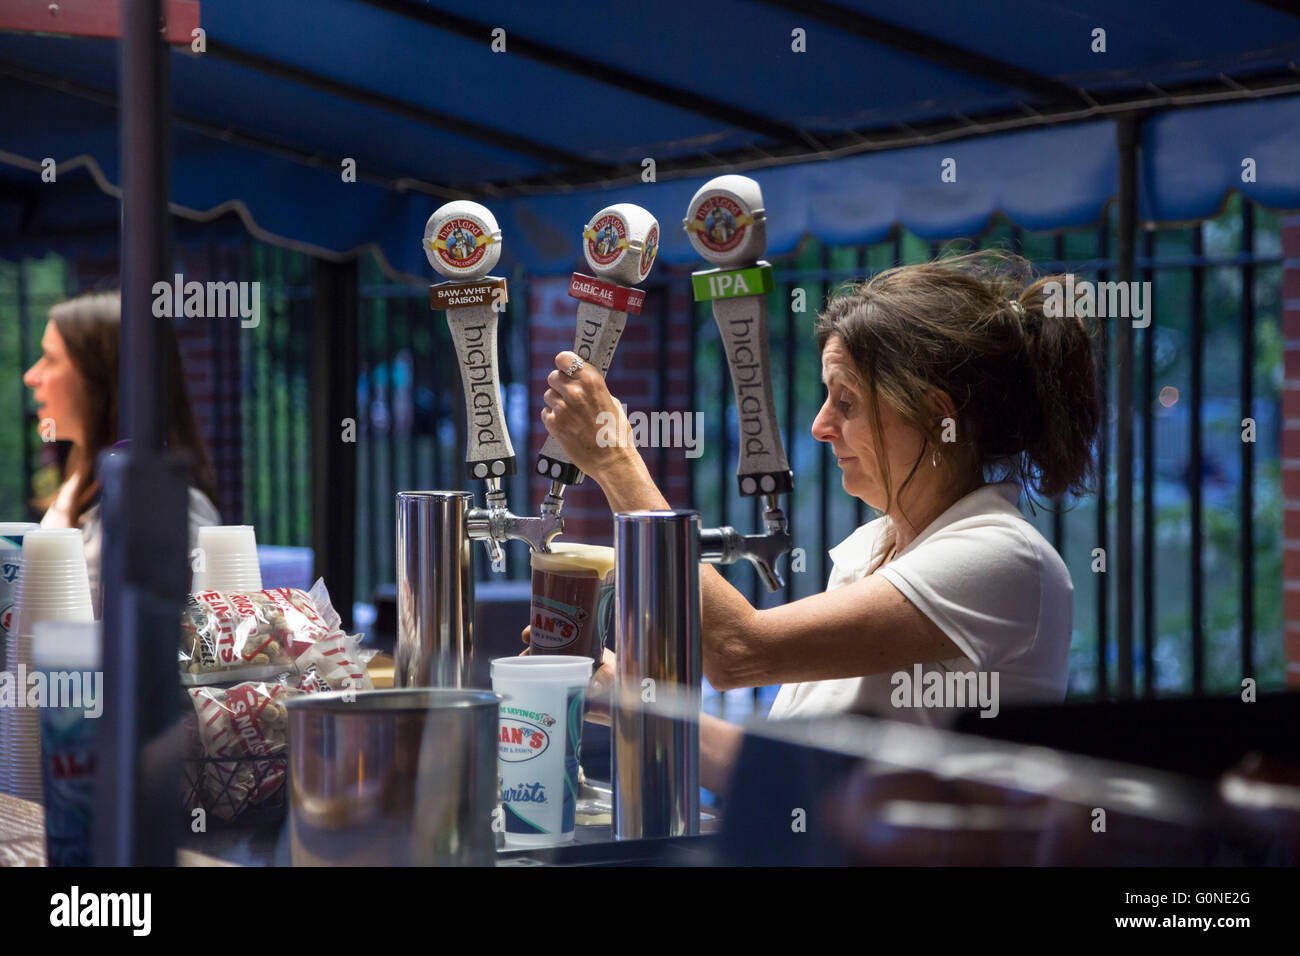 Asheville, North Carolina - A concessions stand worker pours beer during a minor league baseball game at McCormick - Stock Image